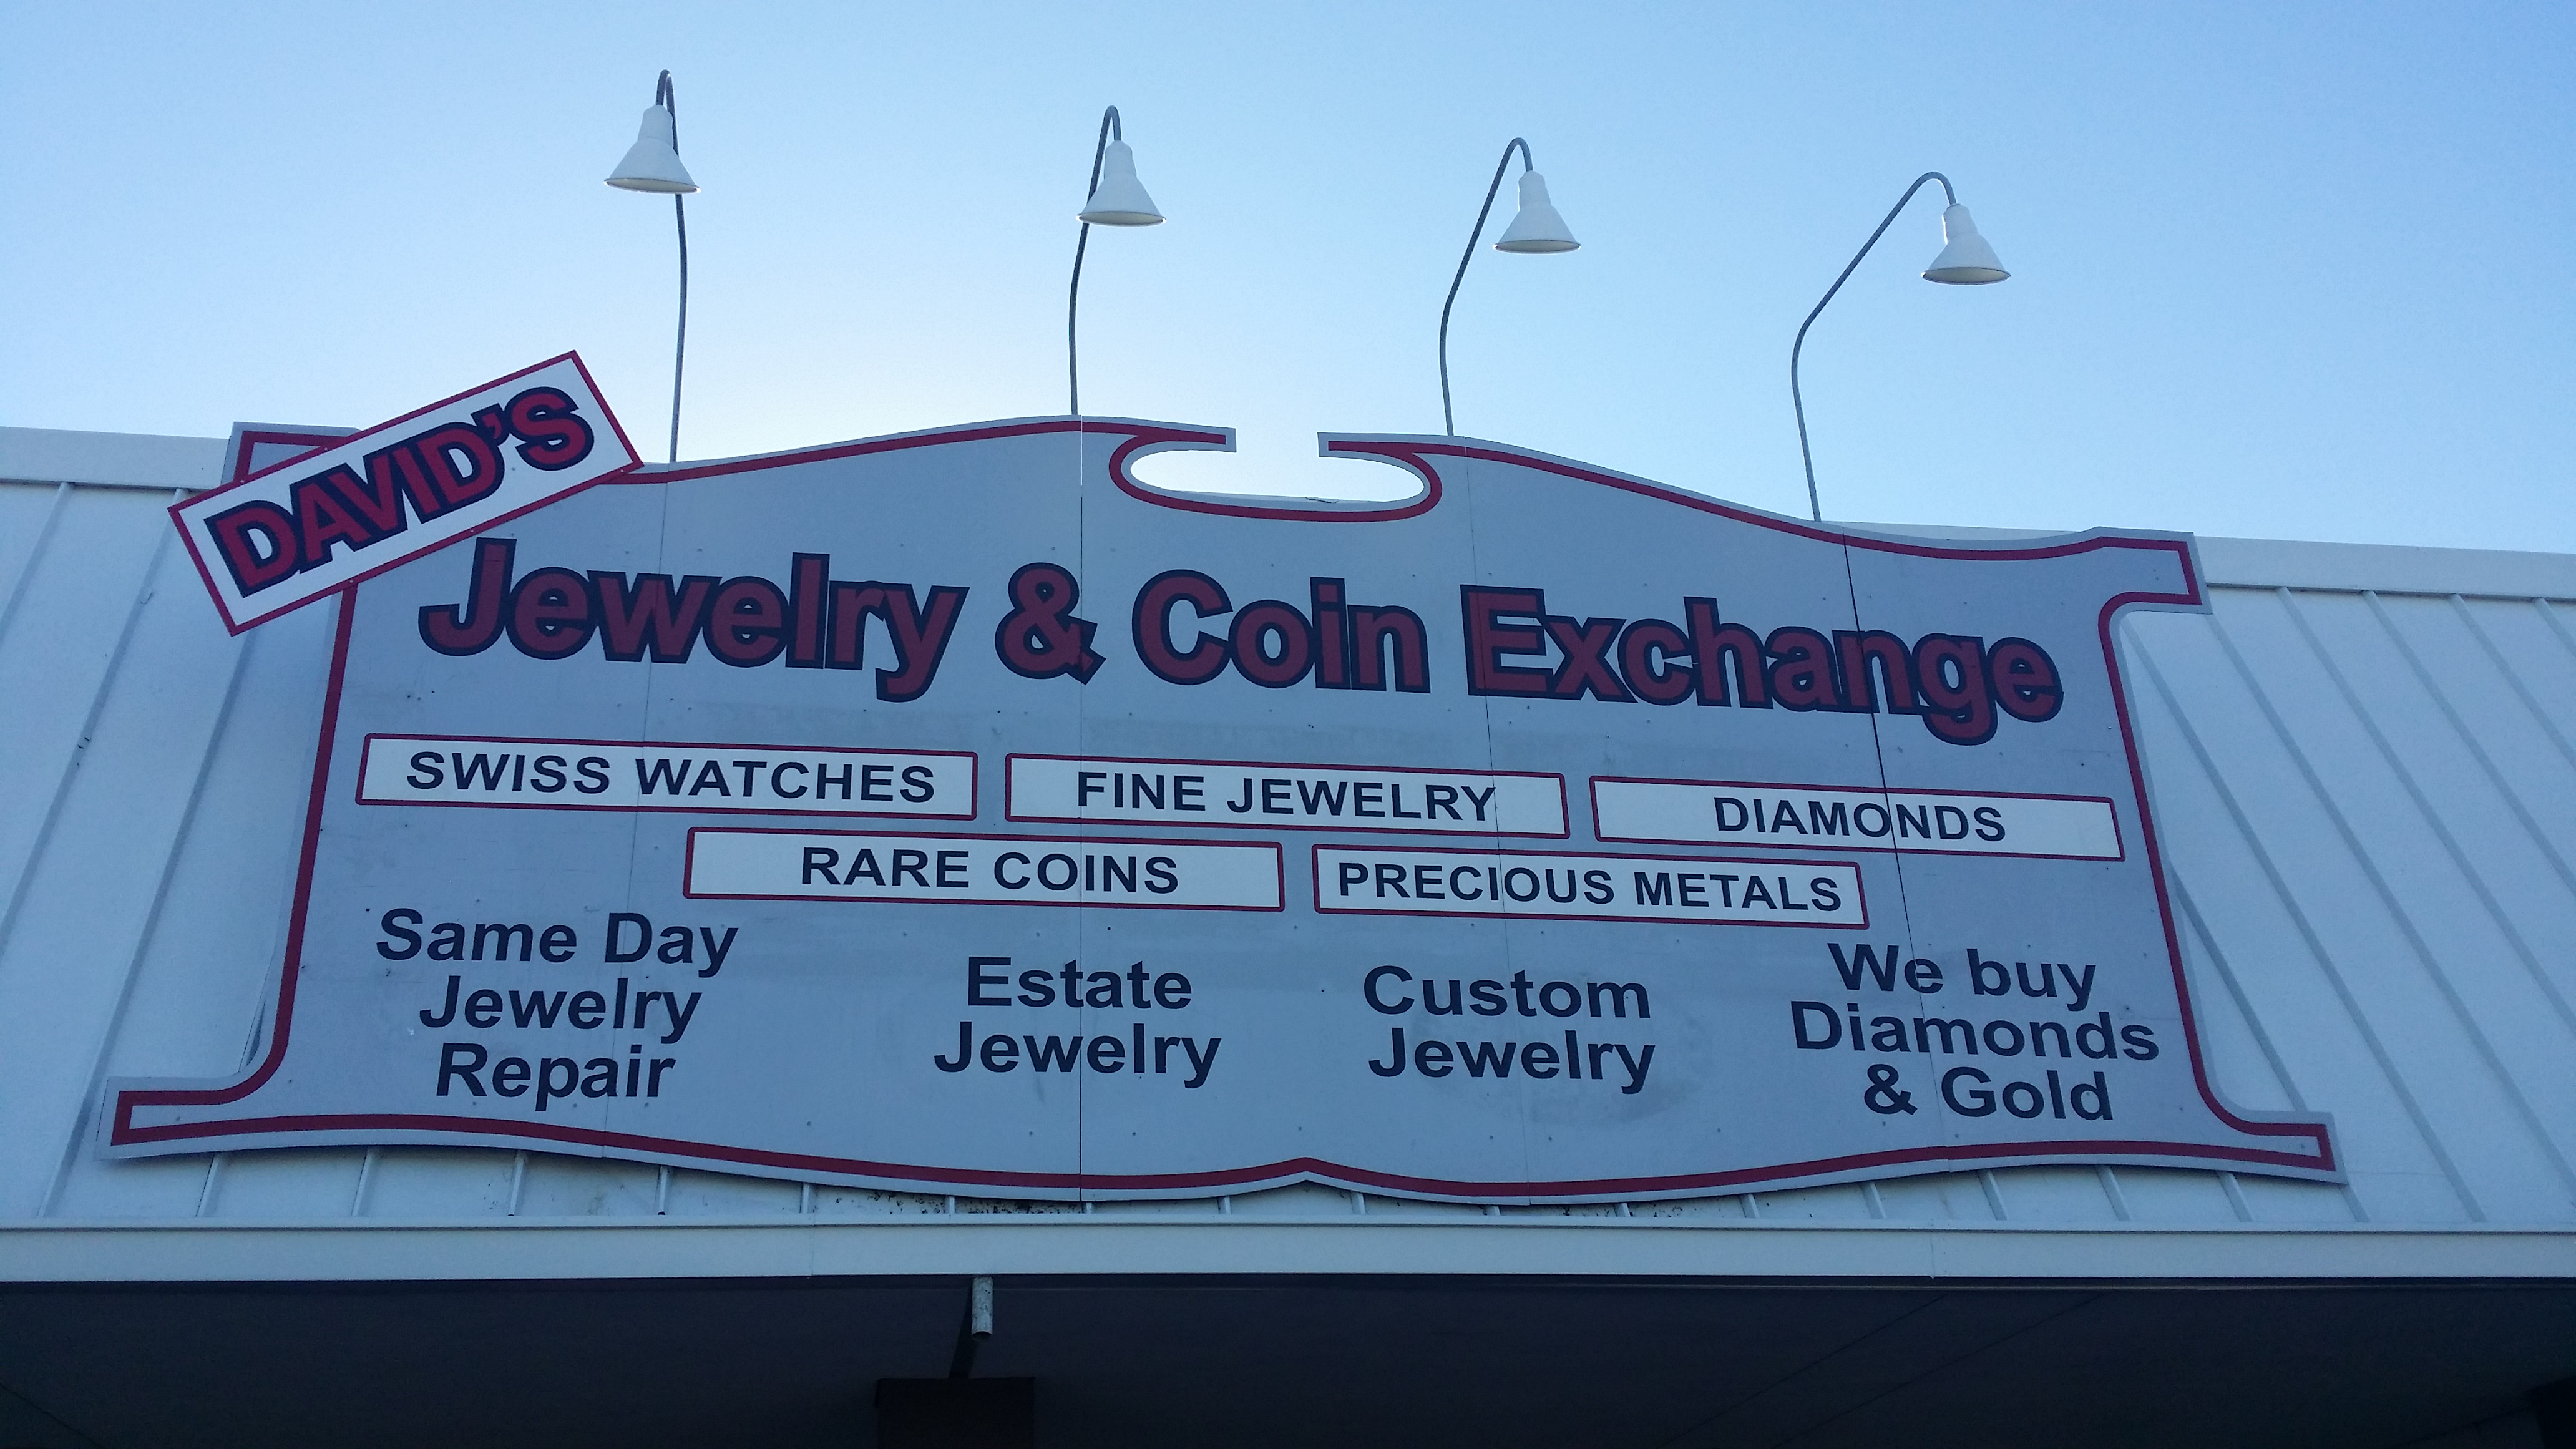 david 39 s jewelry and coin exchange 313 college ave college